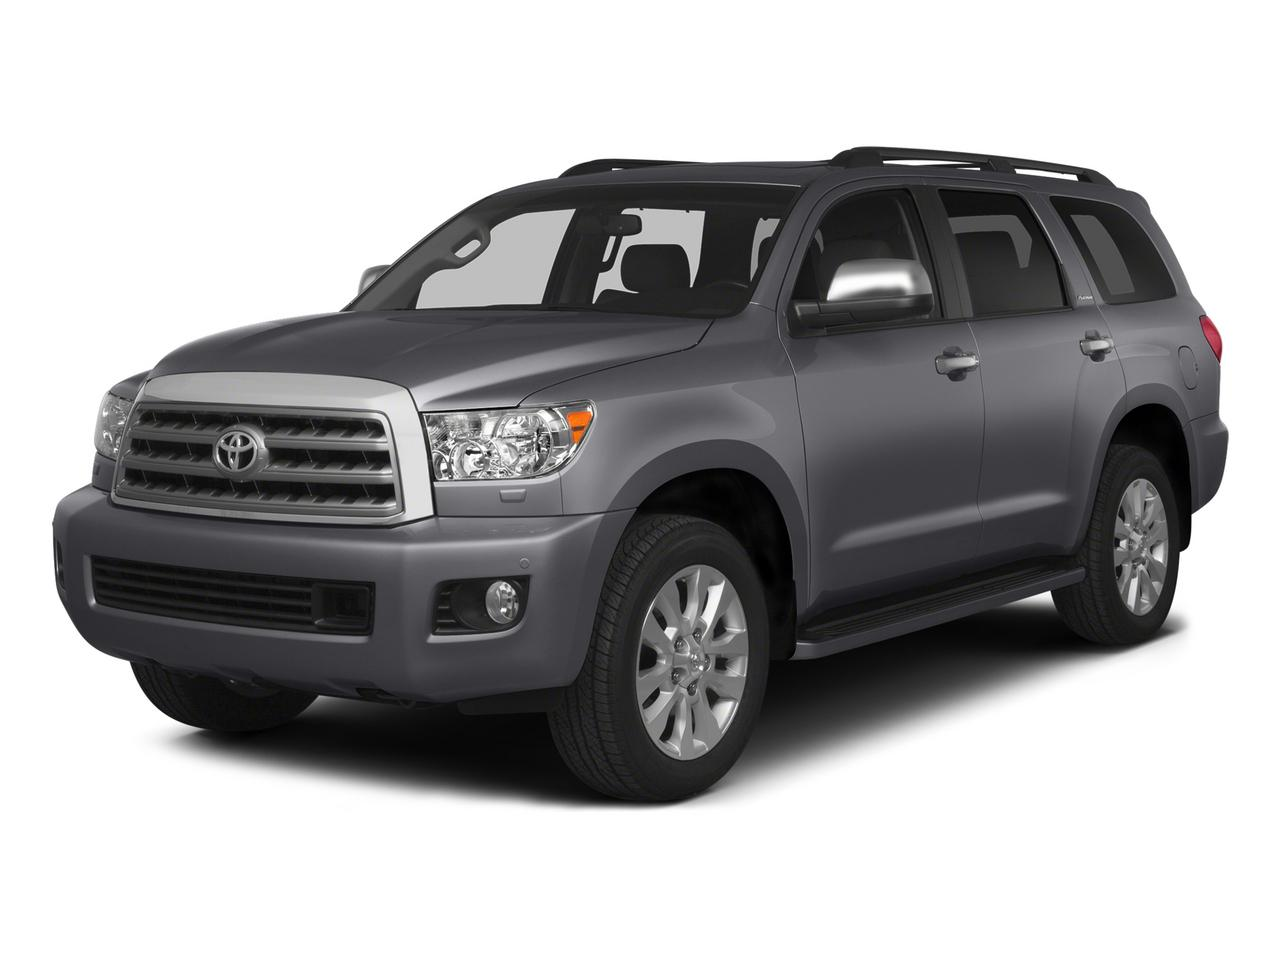 2015 Toyota Sequoia Vehicle Photo in Concord, NC 28027